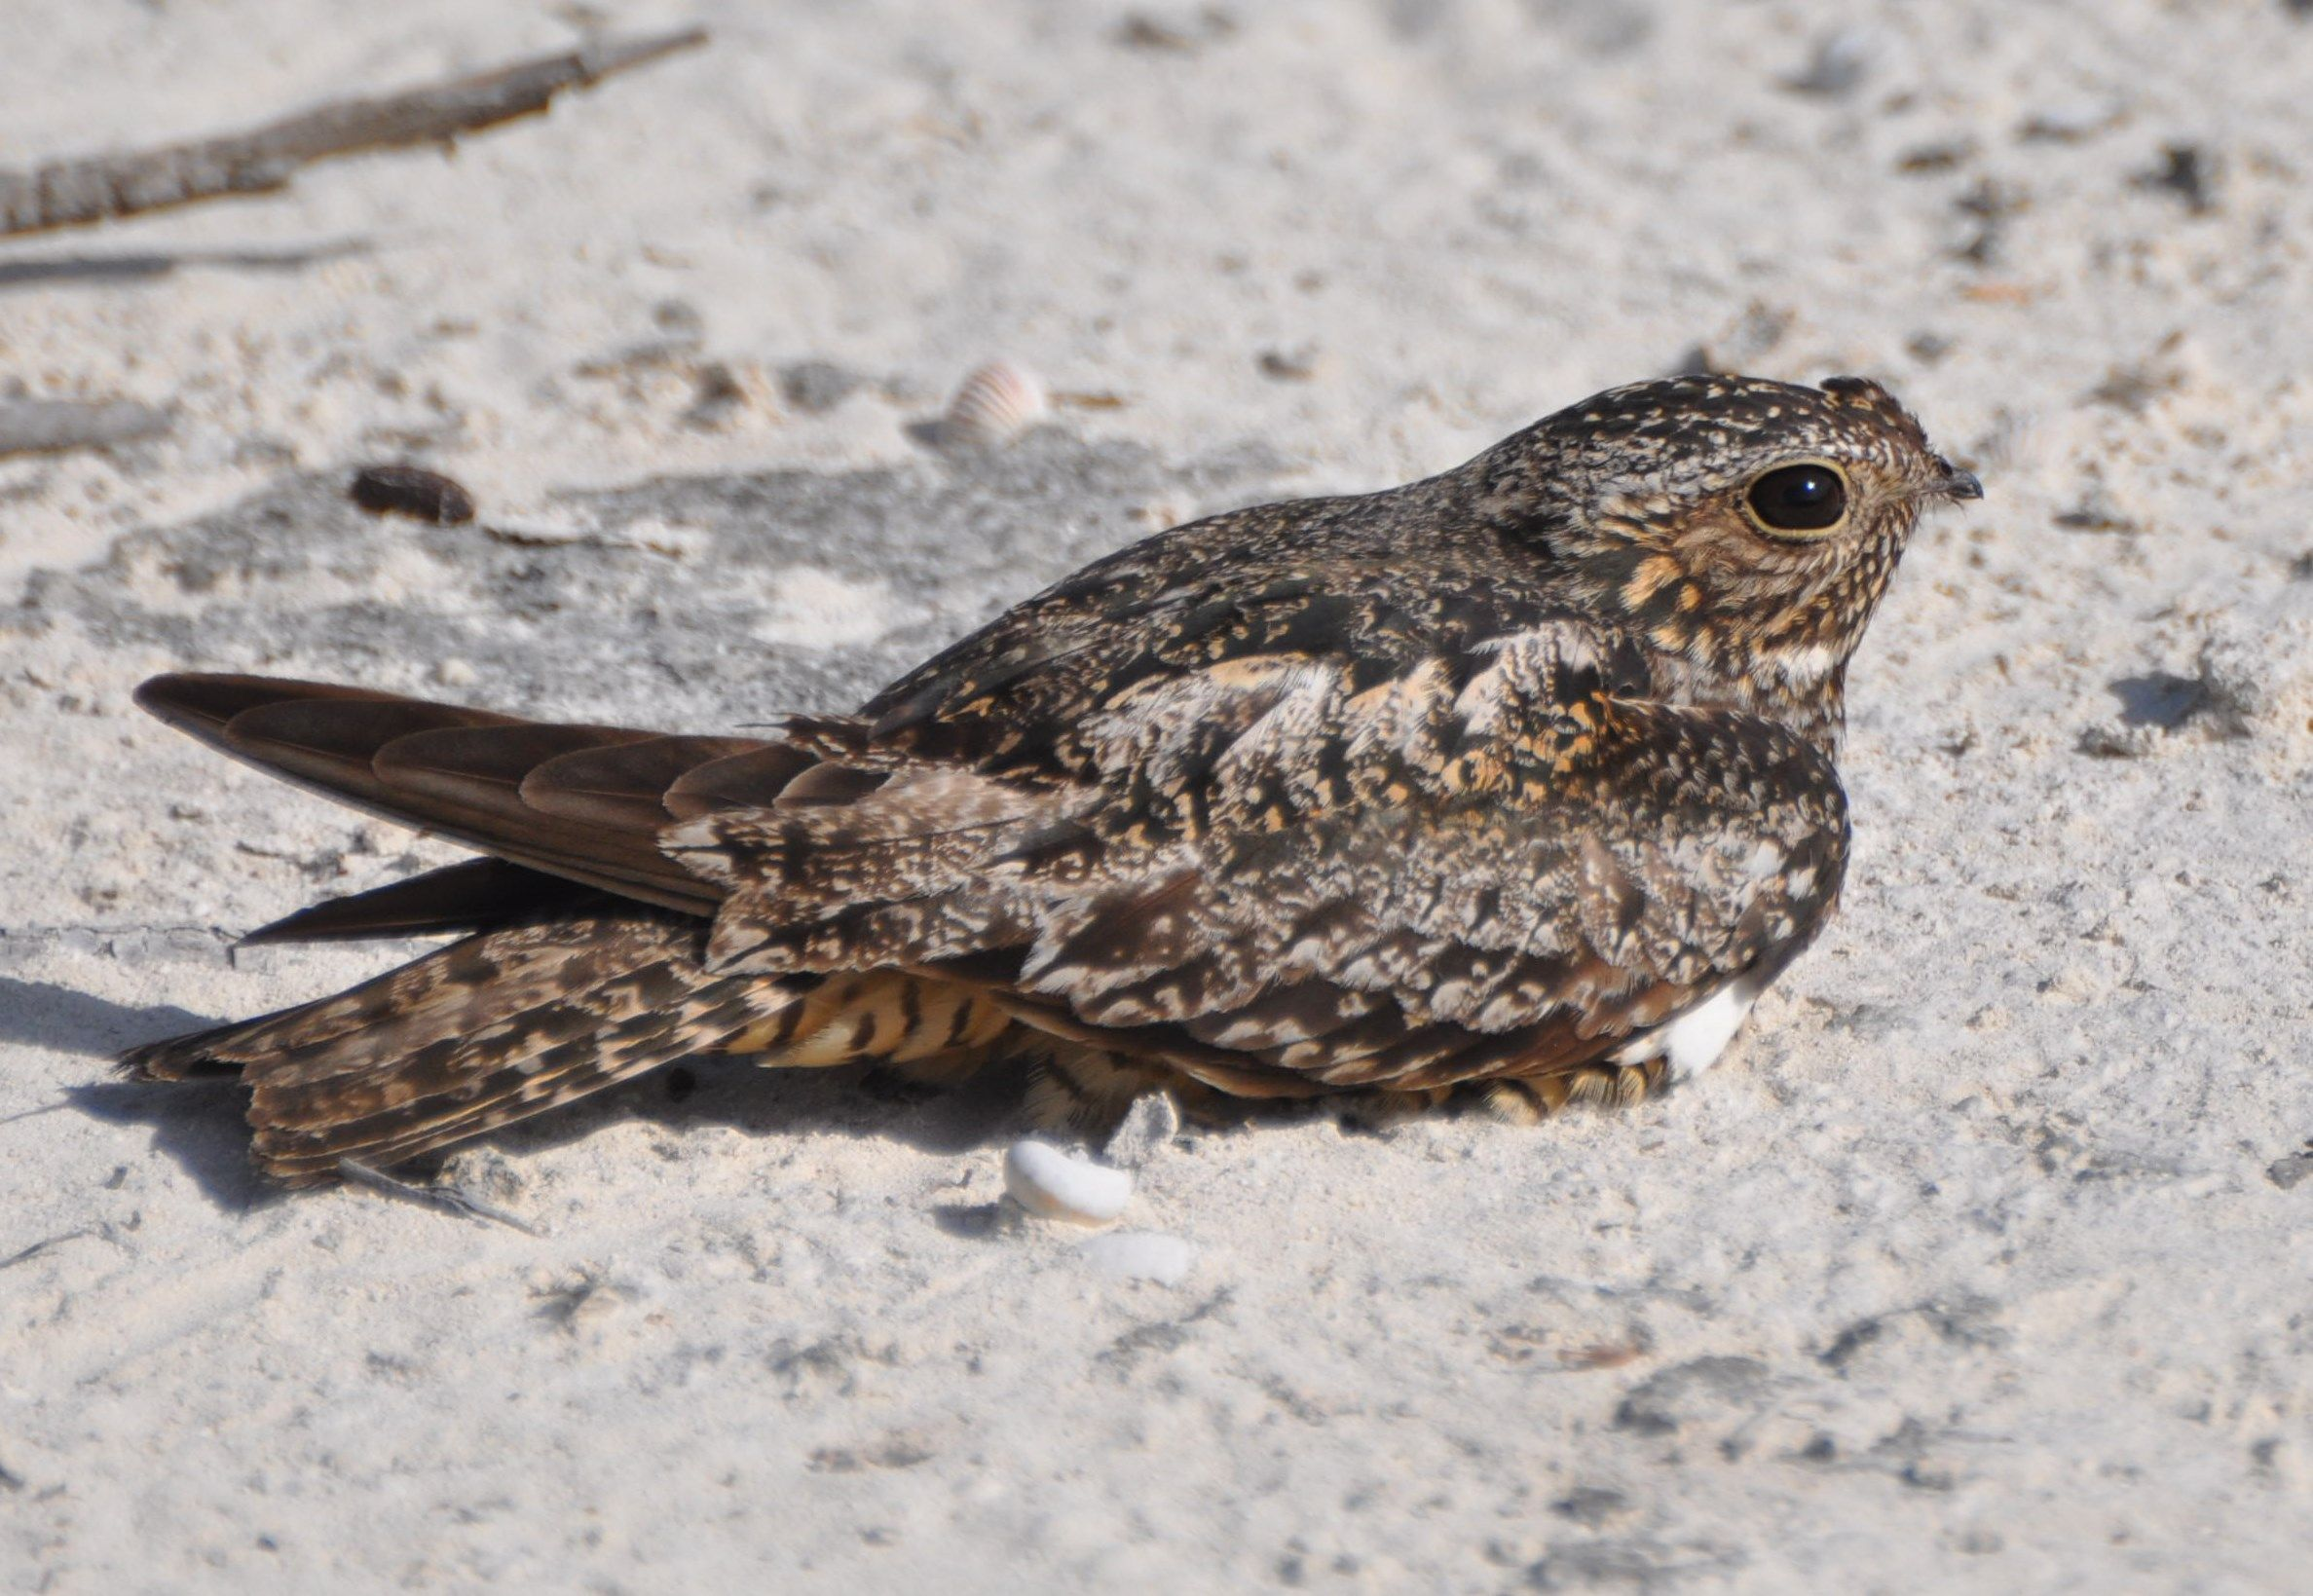 2356. Antillean Nighthawk (Chordeiles gundlachii) | its breeding habitat is open country of the Greater Antilles, the Bahamas and the Florida Keys in the United States